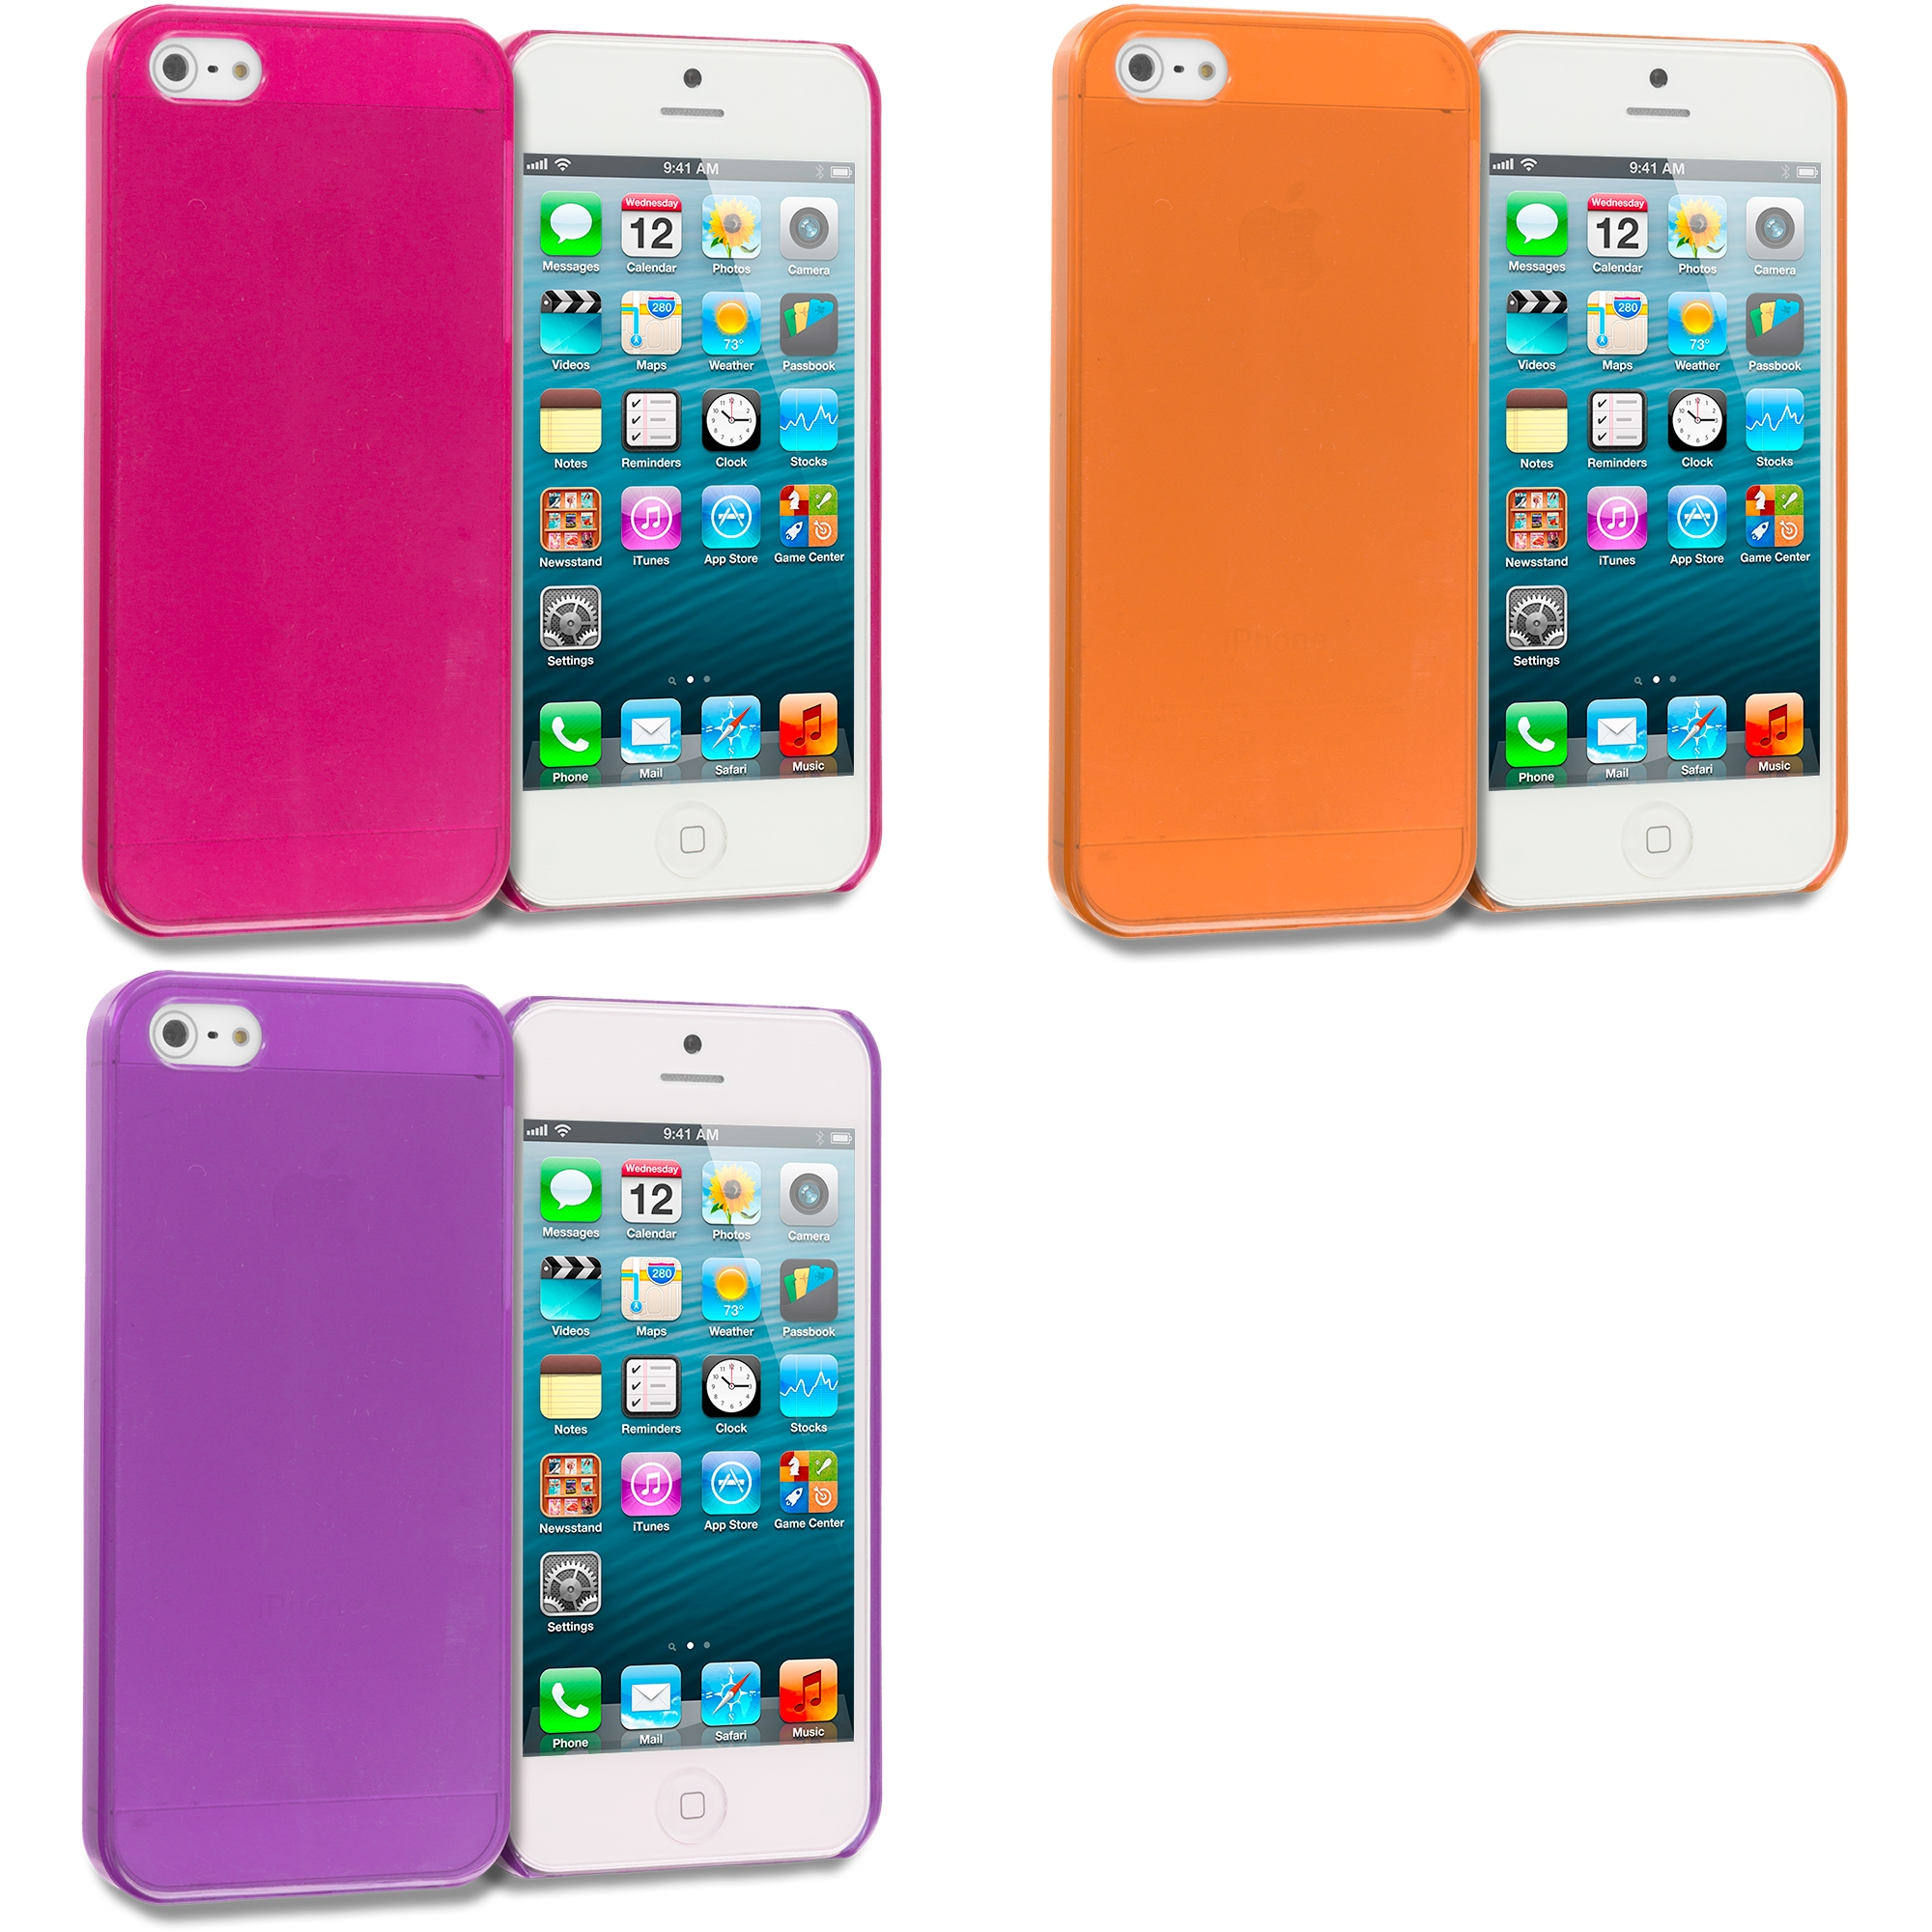 Apple iPhone 5/5S/SE Combo Pack : Hot Pink Crystal Hard Back Cover Case